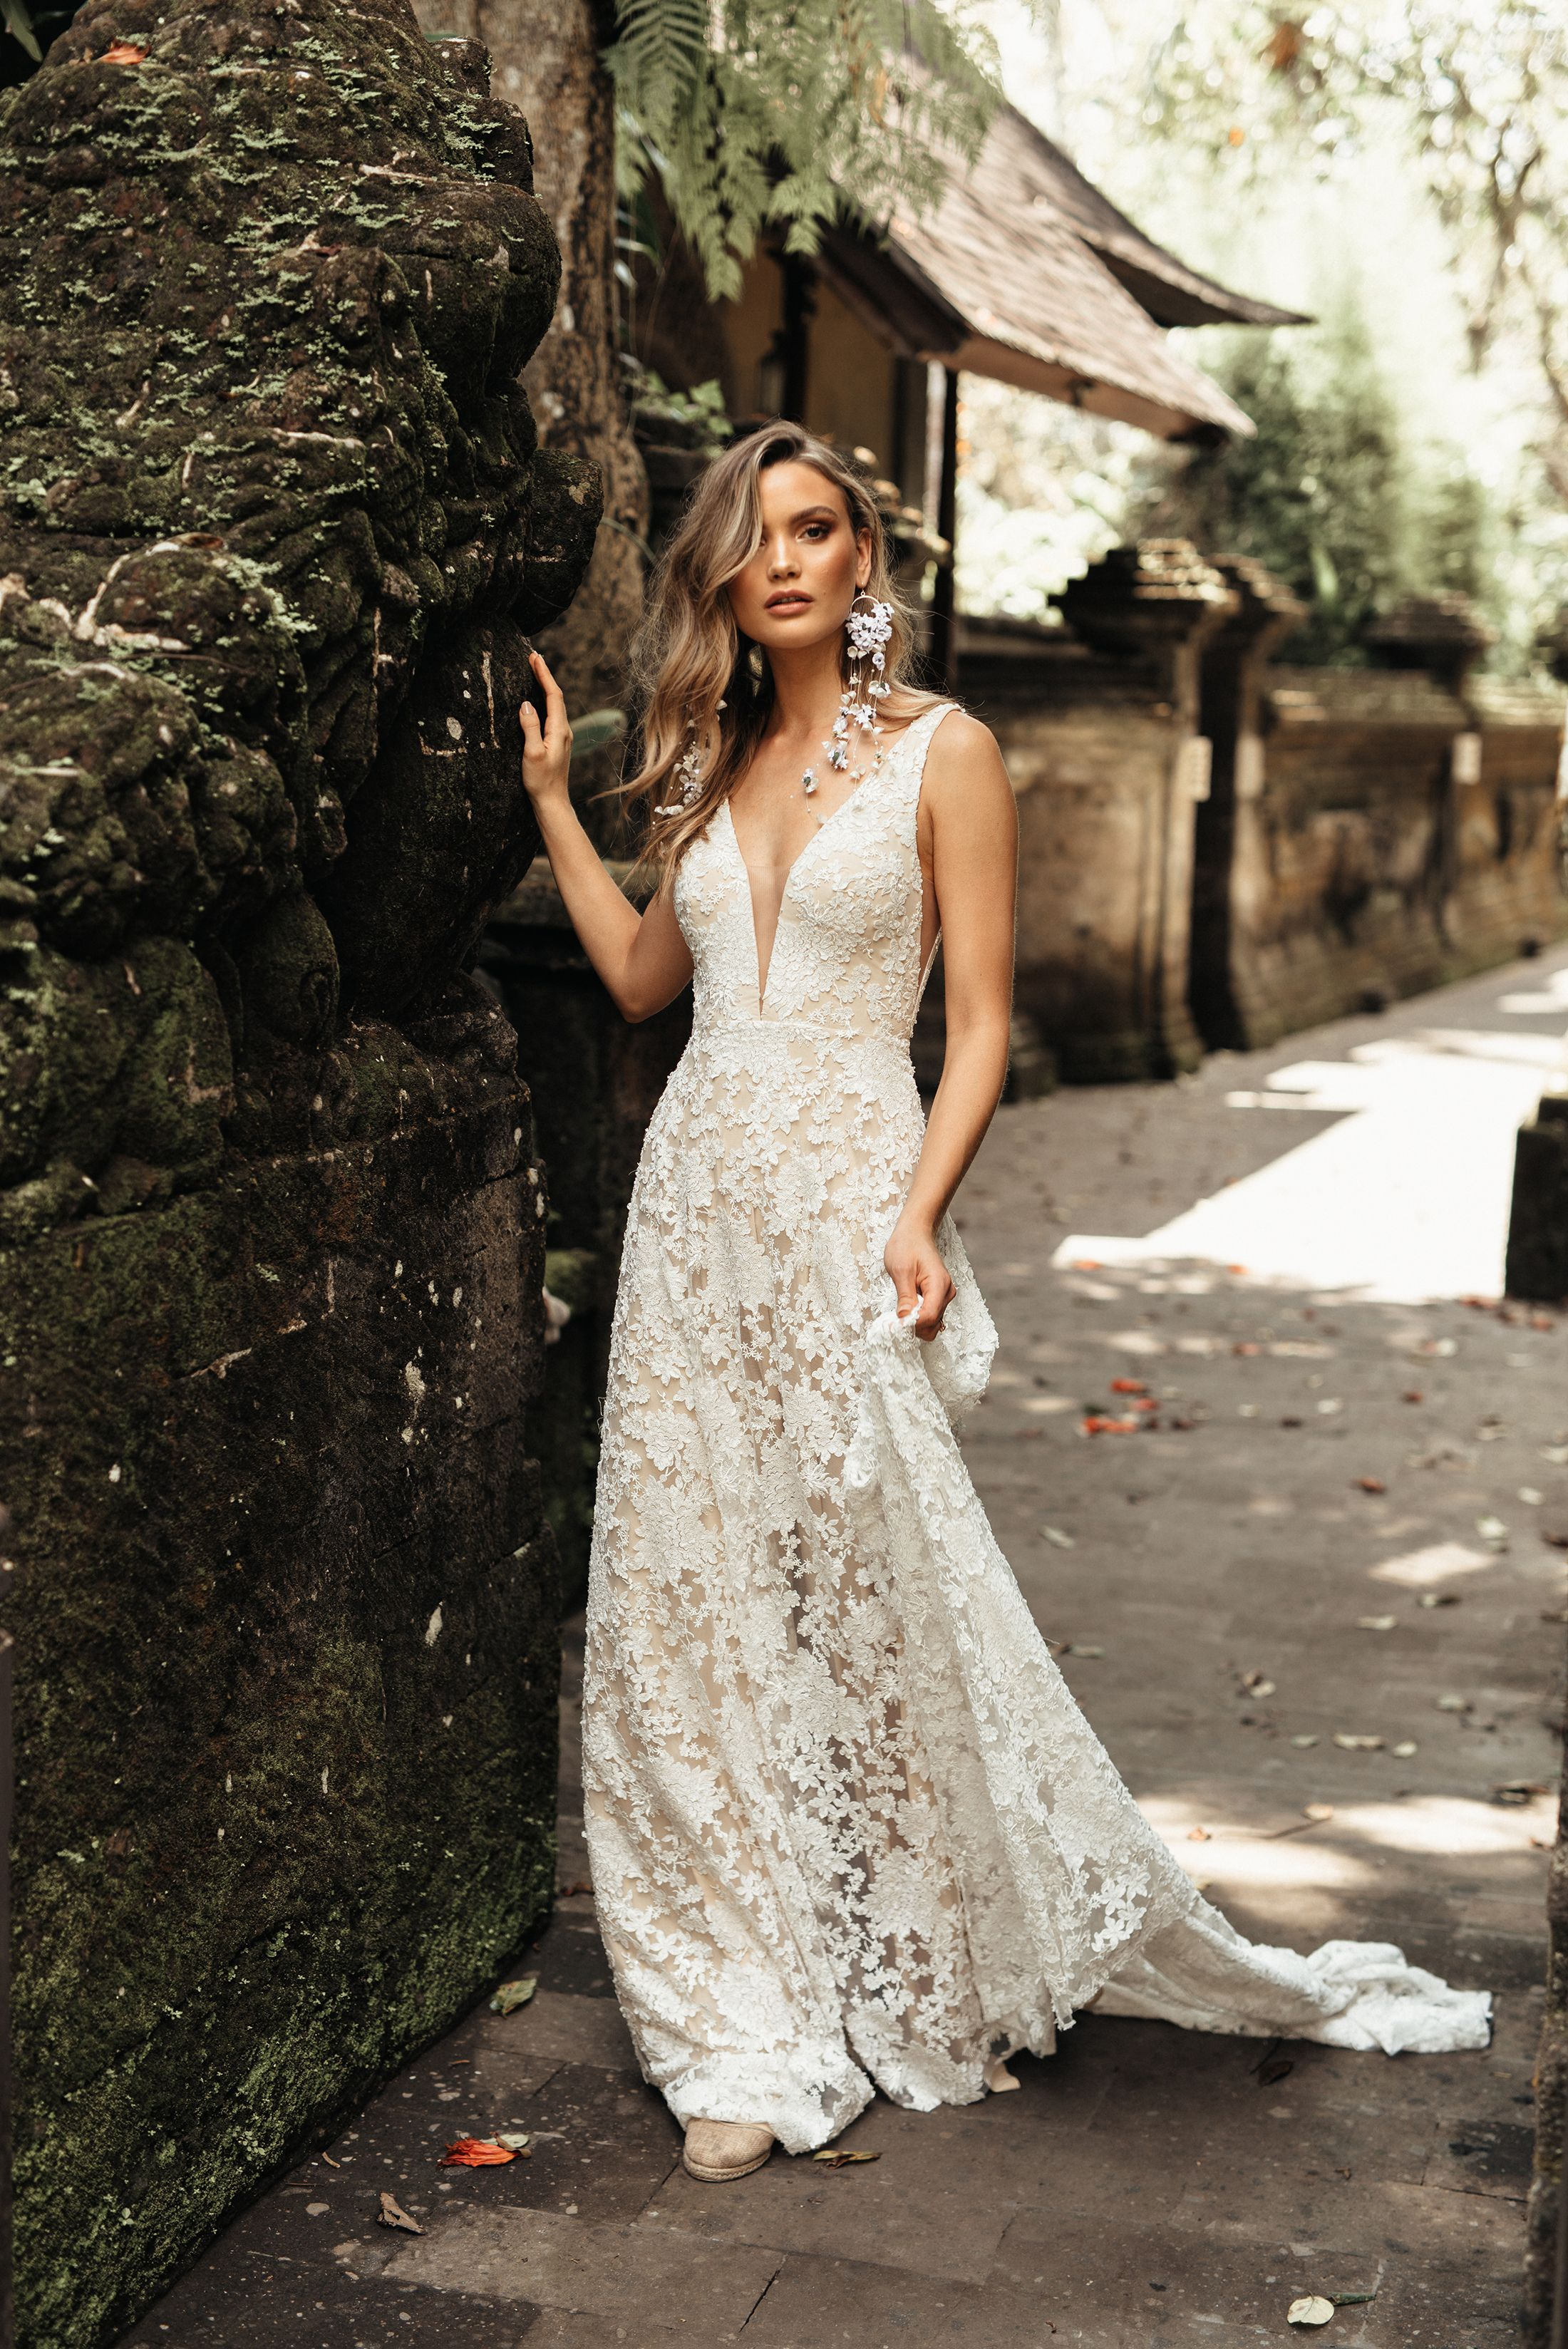 V neck white lace dress may 2019 Tara Lauren  Collection  Weure getting married in